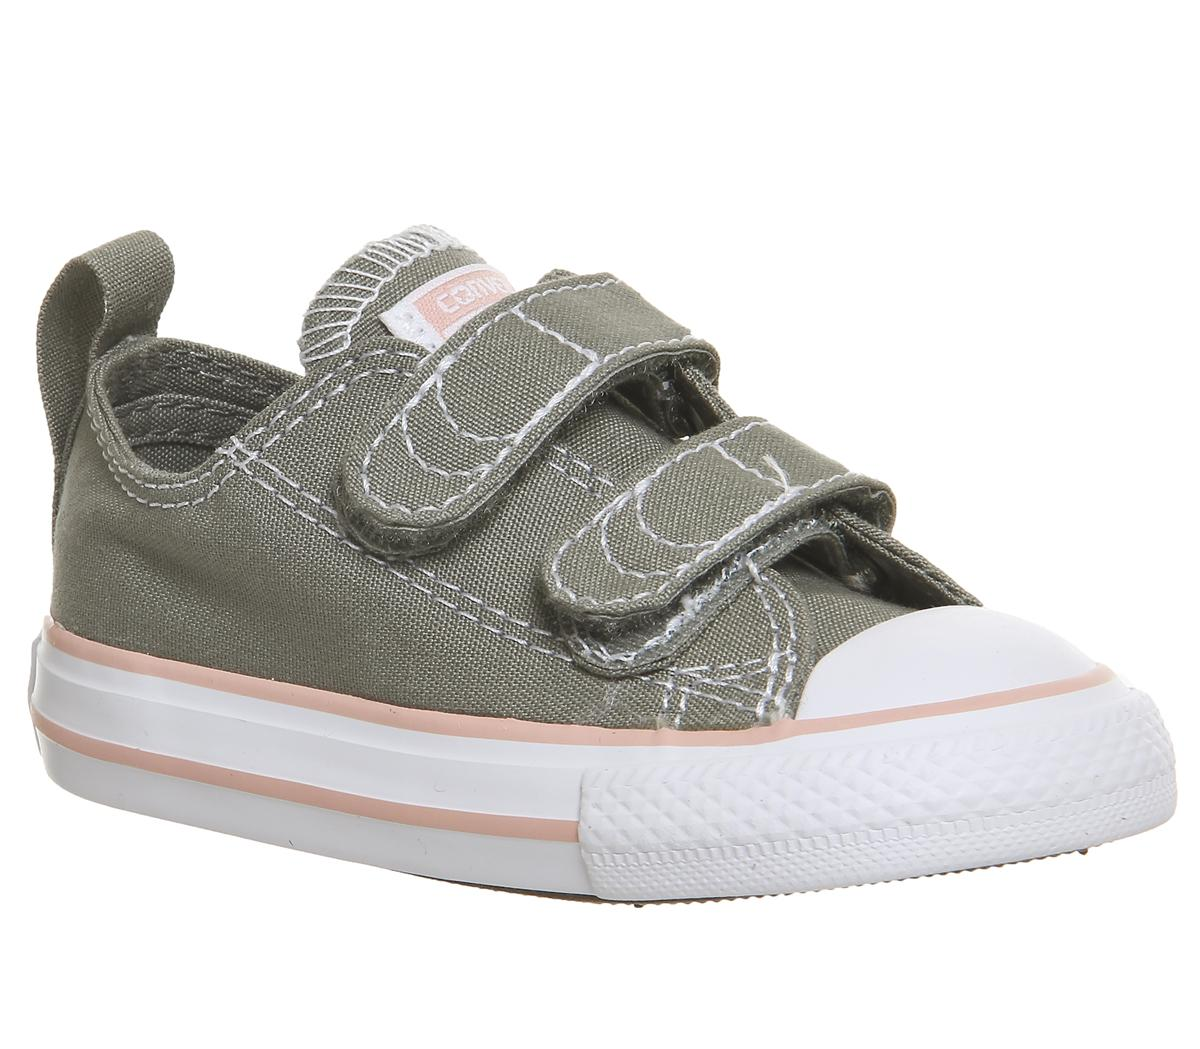 Kids Converse All Star 2Vlace Dark Stucco Pale Coral